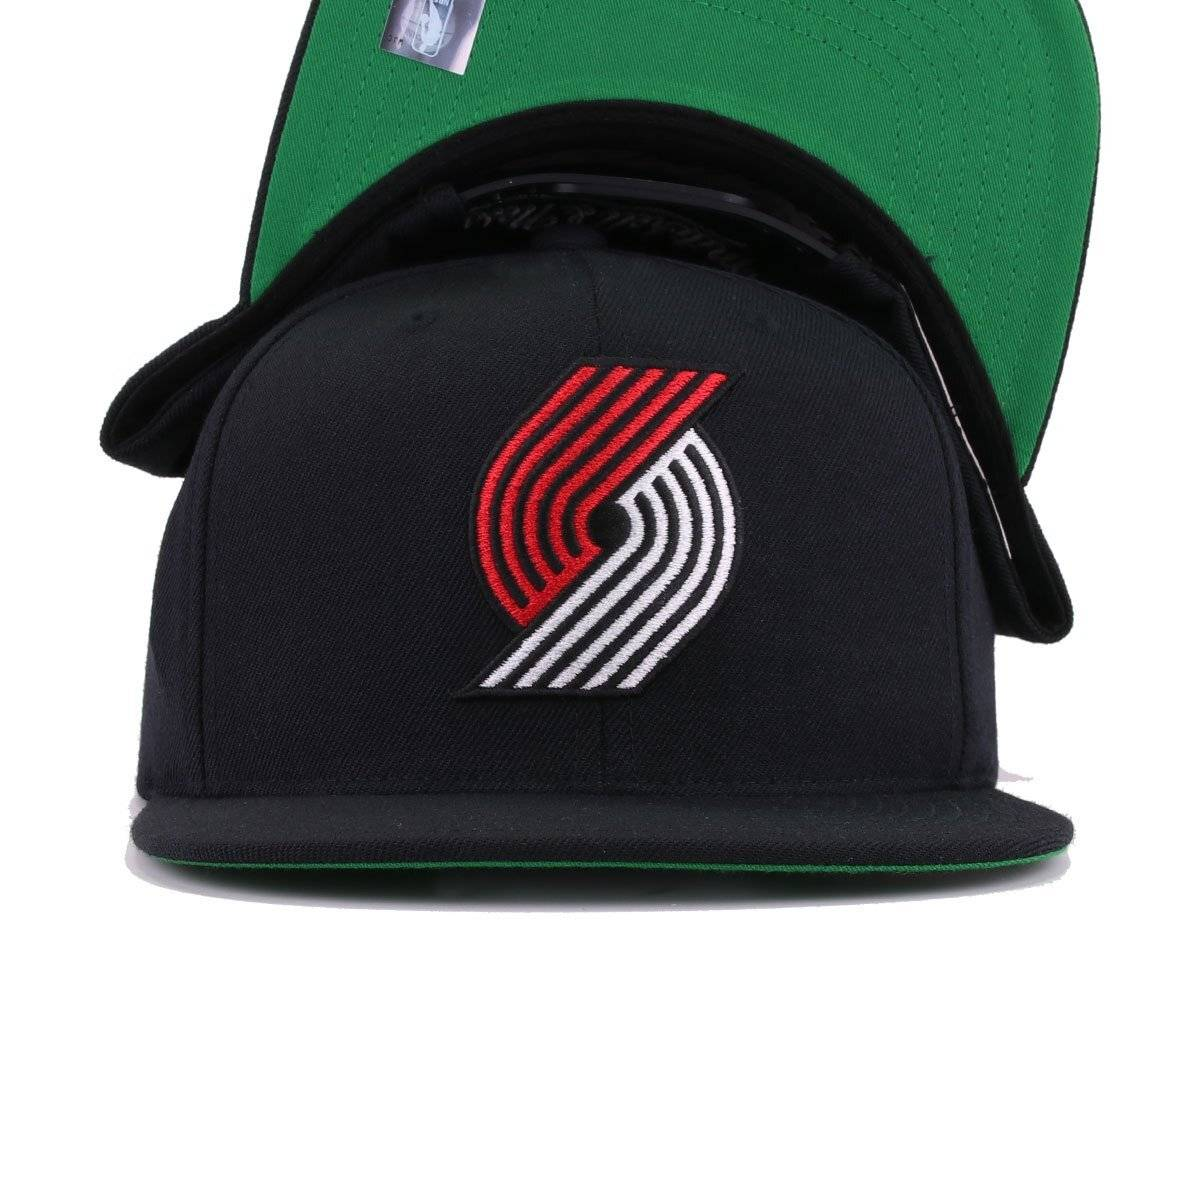 competitive price 0d3e2 2eb68 Portland Trail Blazers Black Mitchell and Ness Snapback